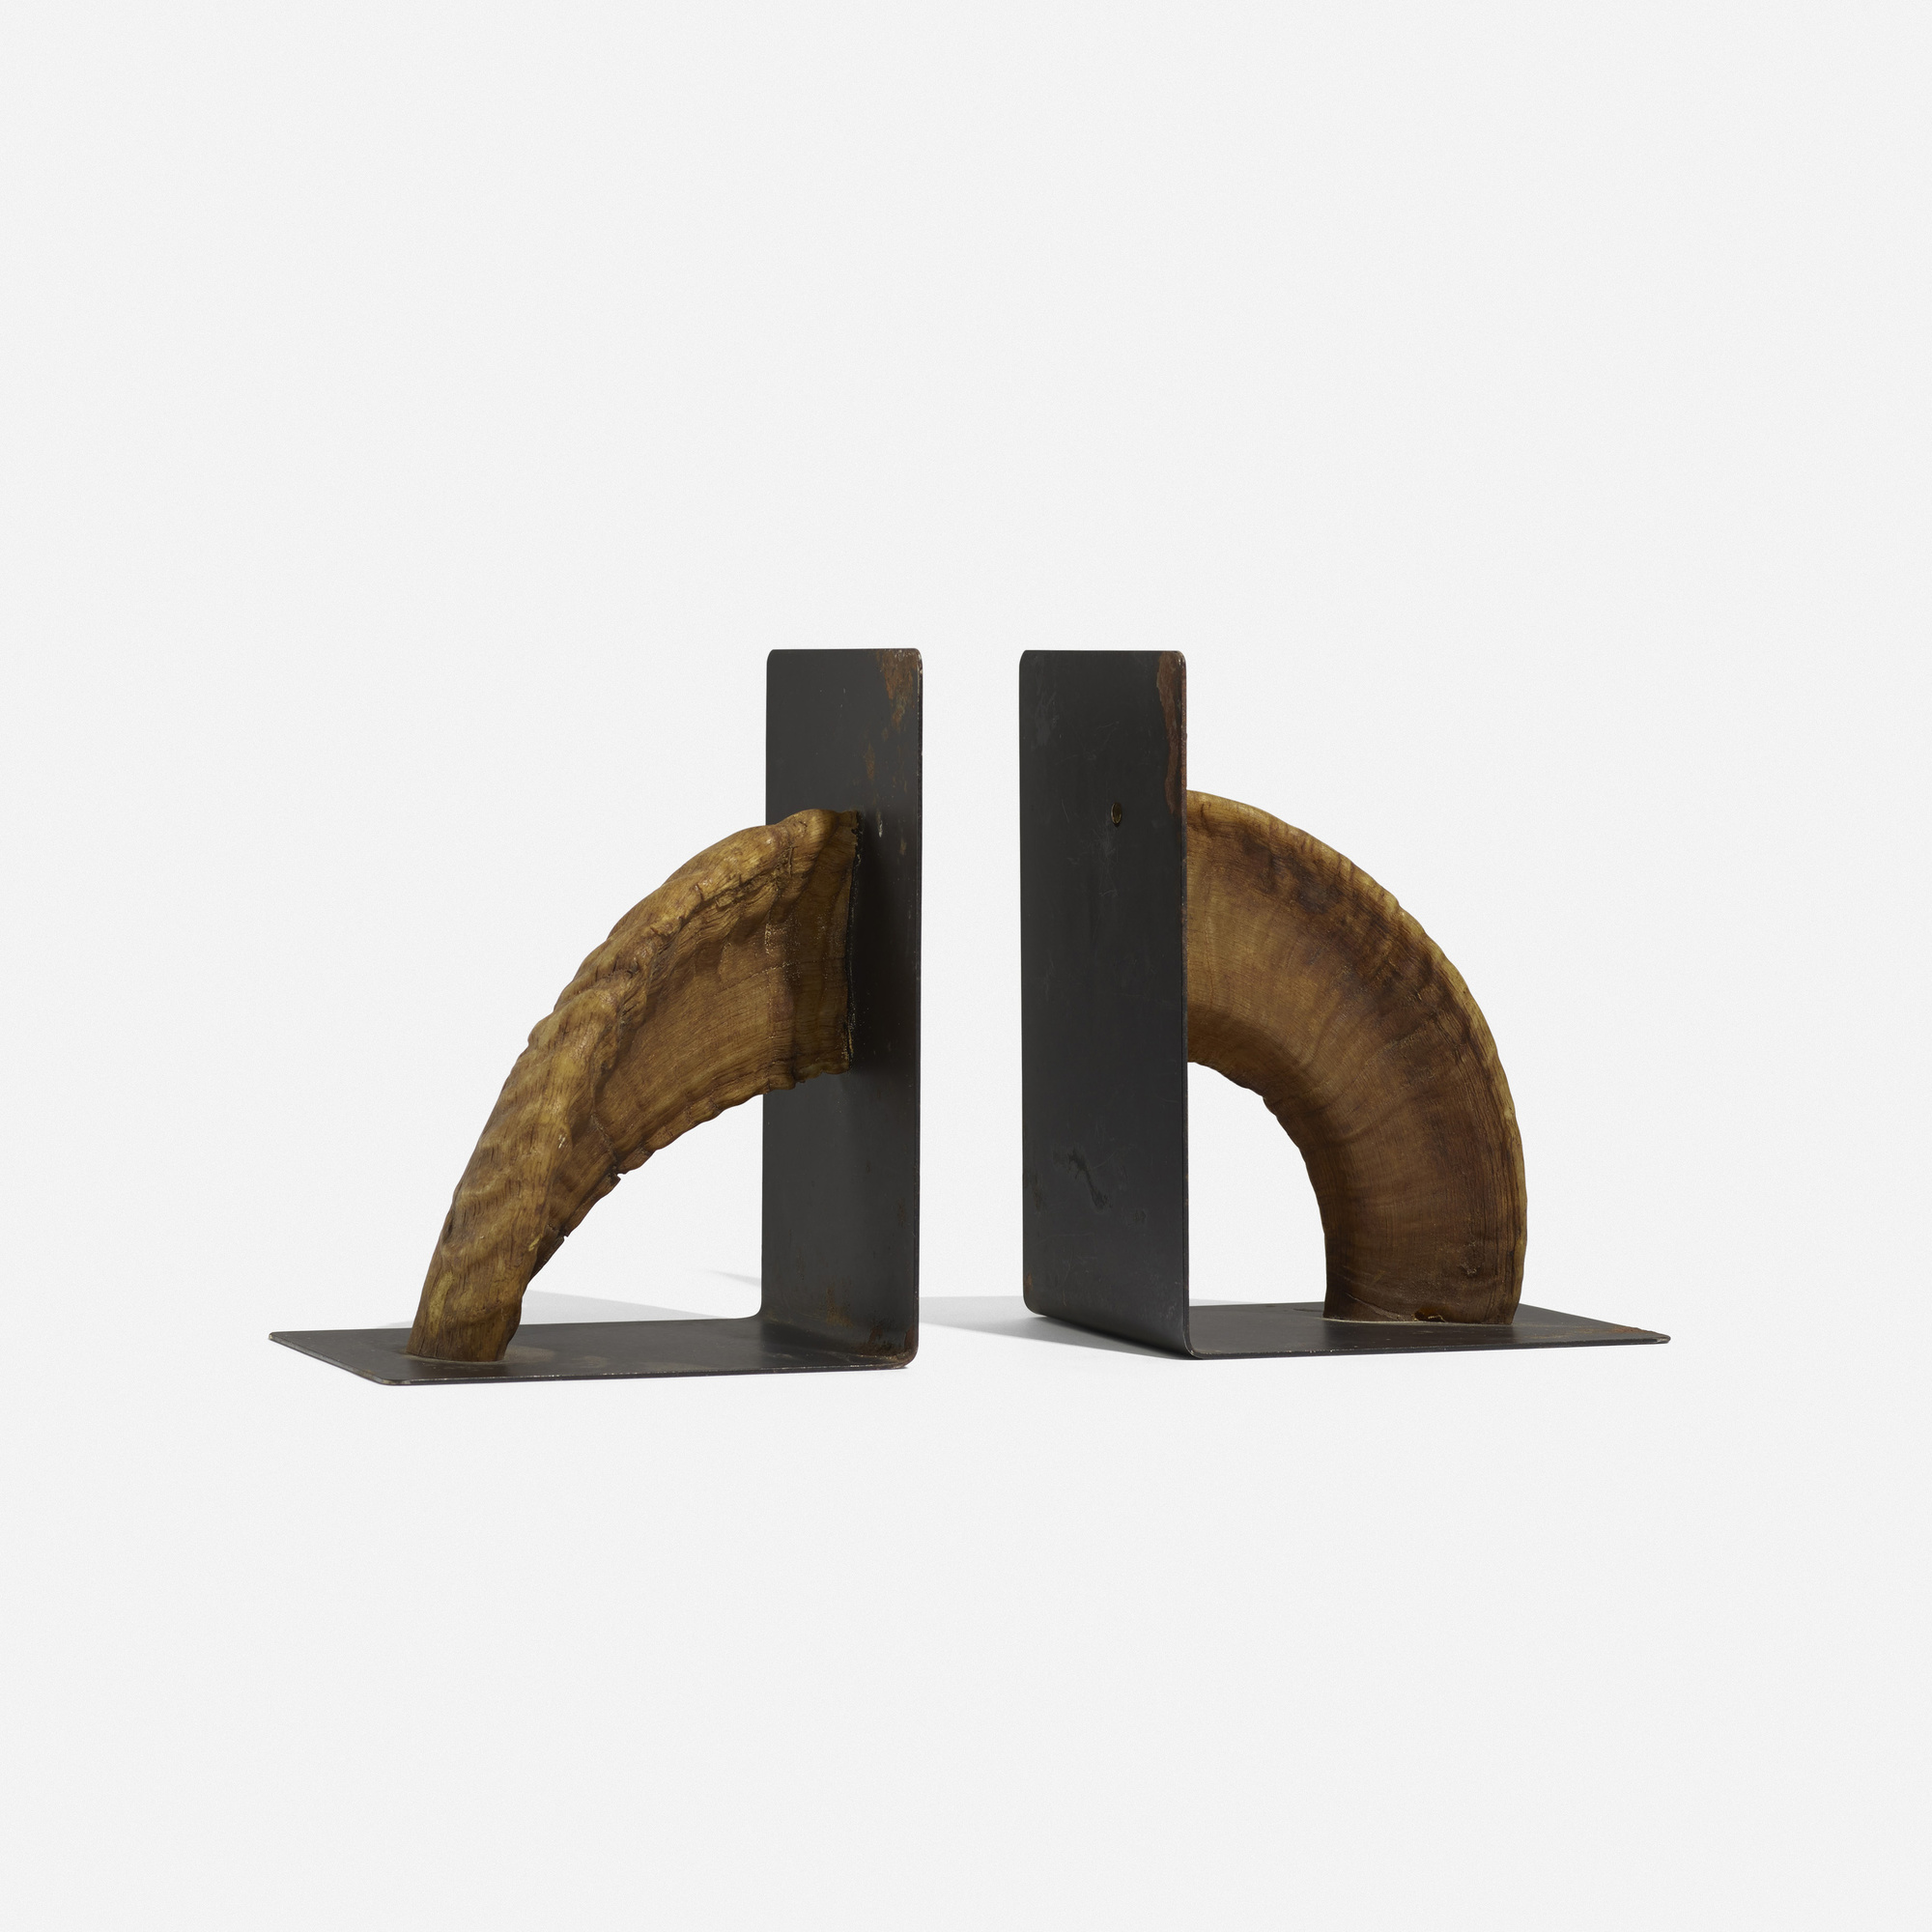 145: Carl Auböck III / bookends, pair (1 of 2)